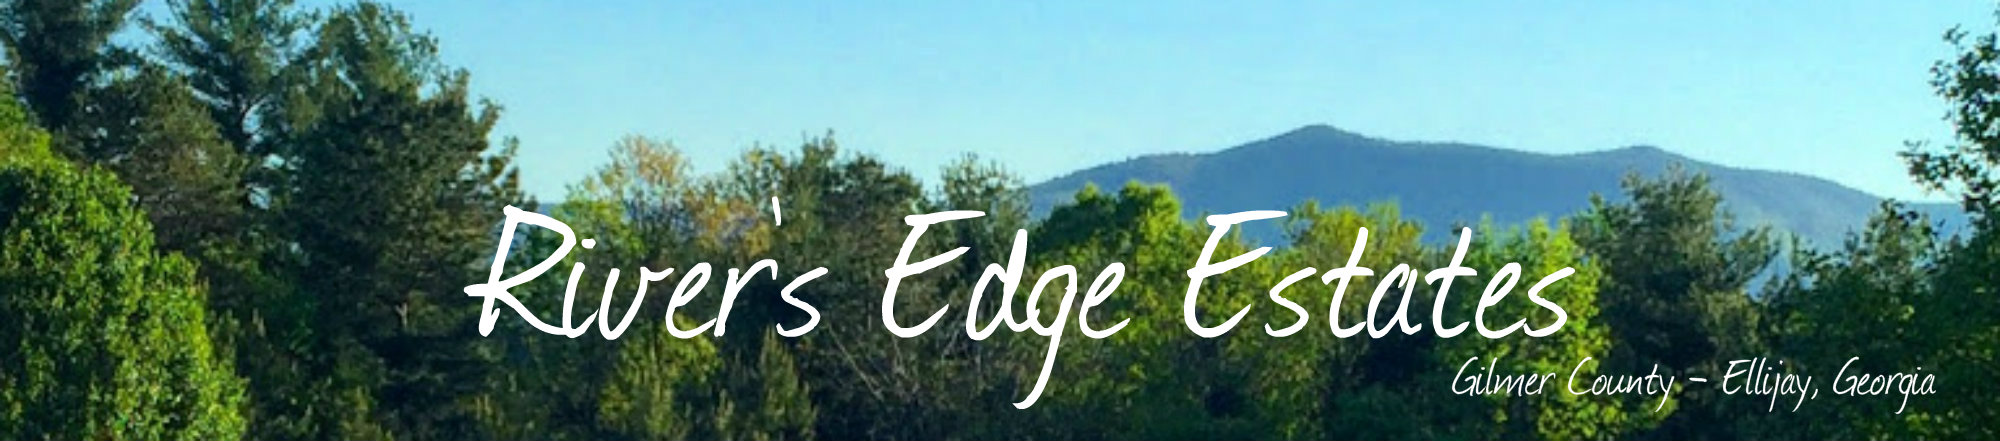 River's Edge Estates